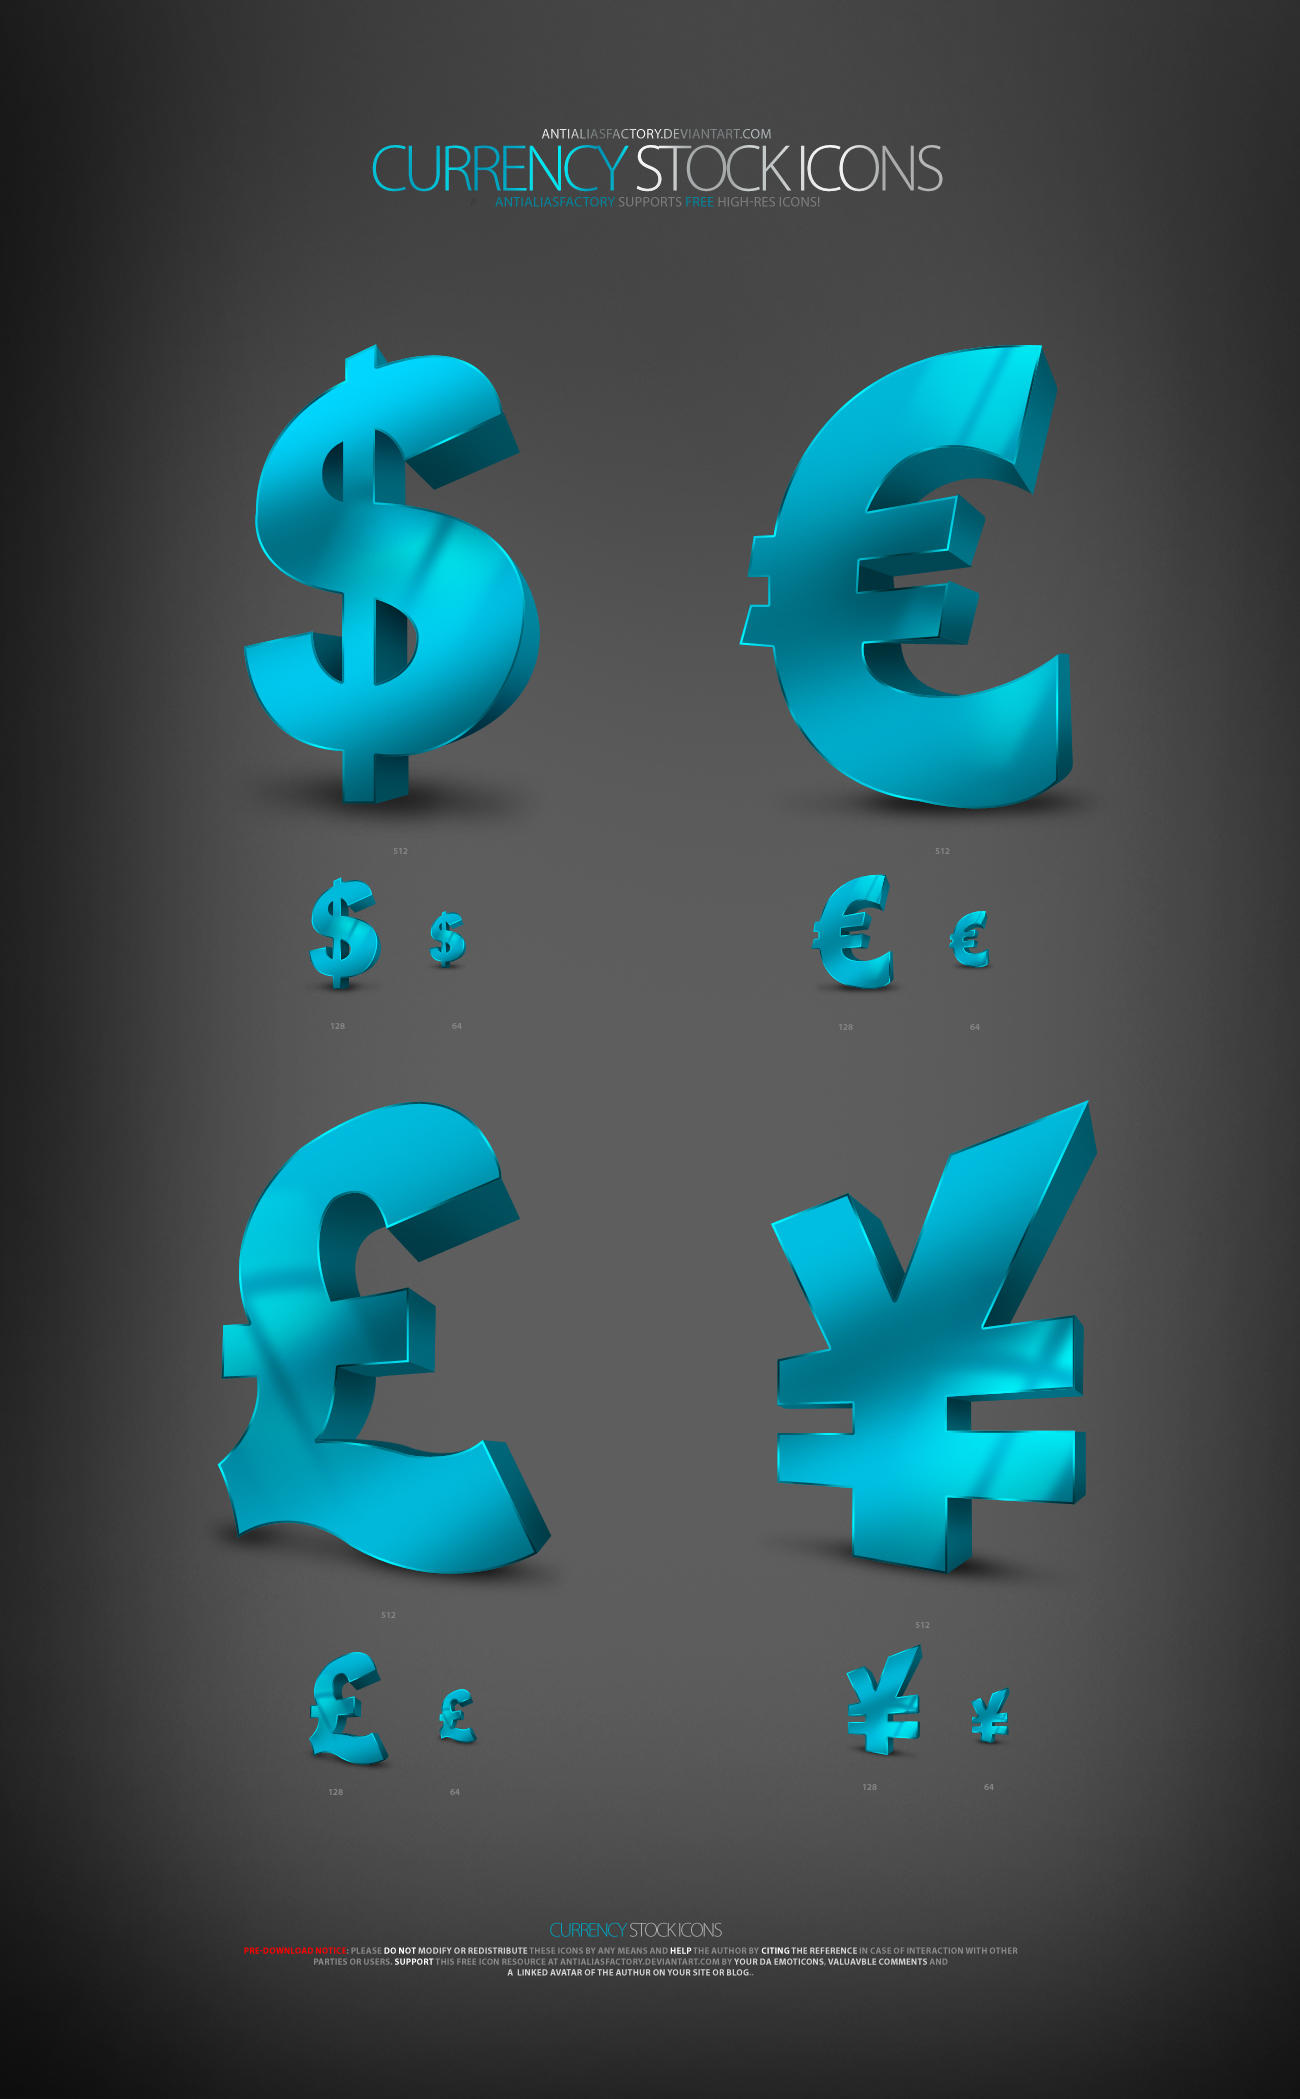 Currency Stock Icons by antialiasfactory